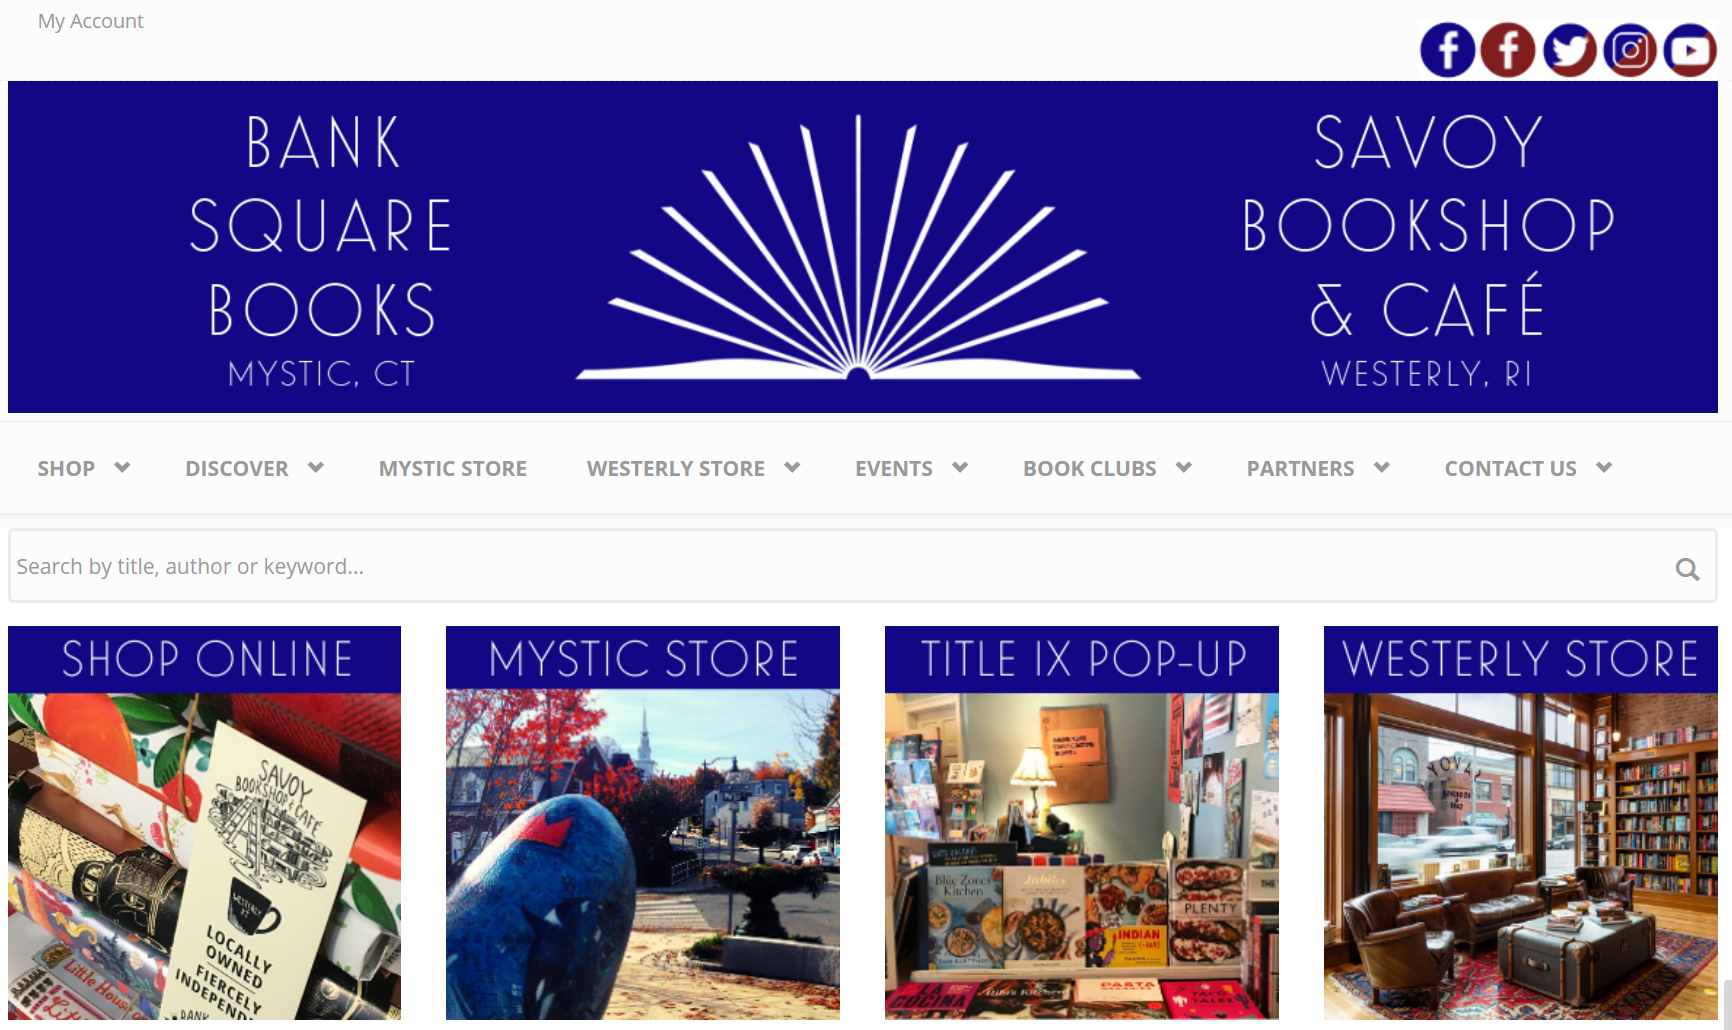 Bank Square Books IndieCommerce Home Page